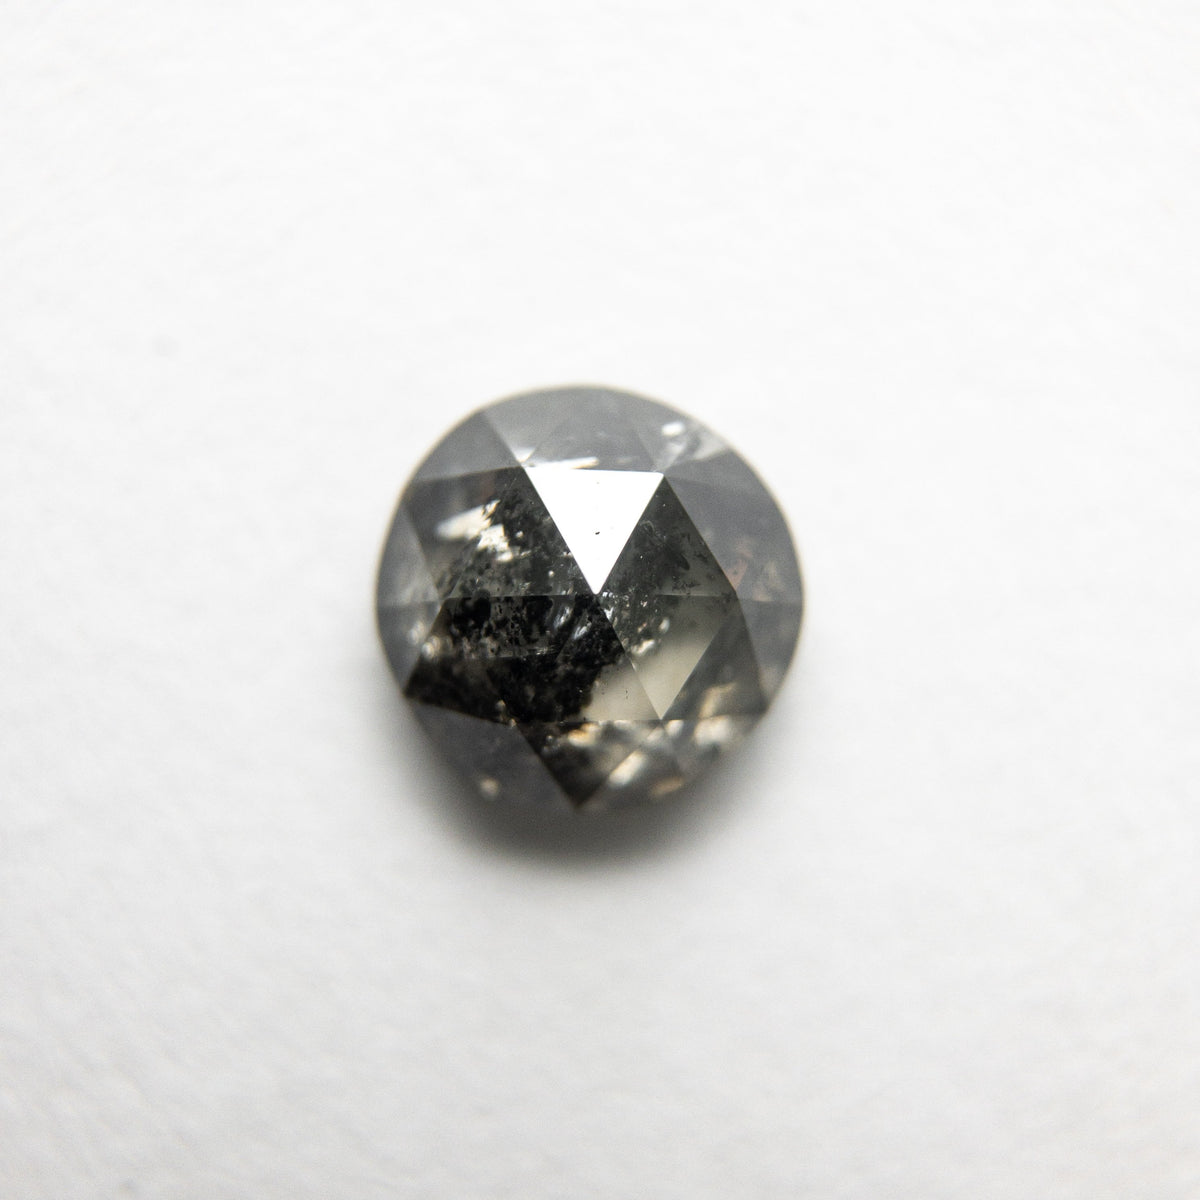 0.81ct 5.81x5.73x2.88mm Round Rosecut 18194-26